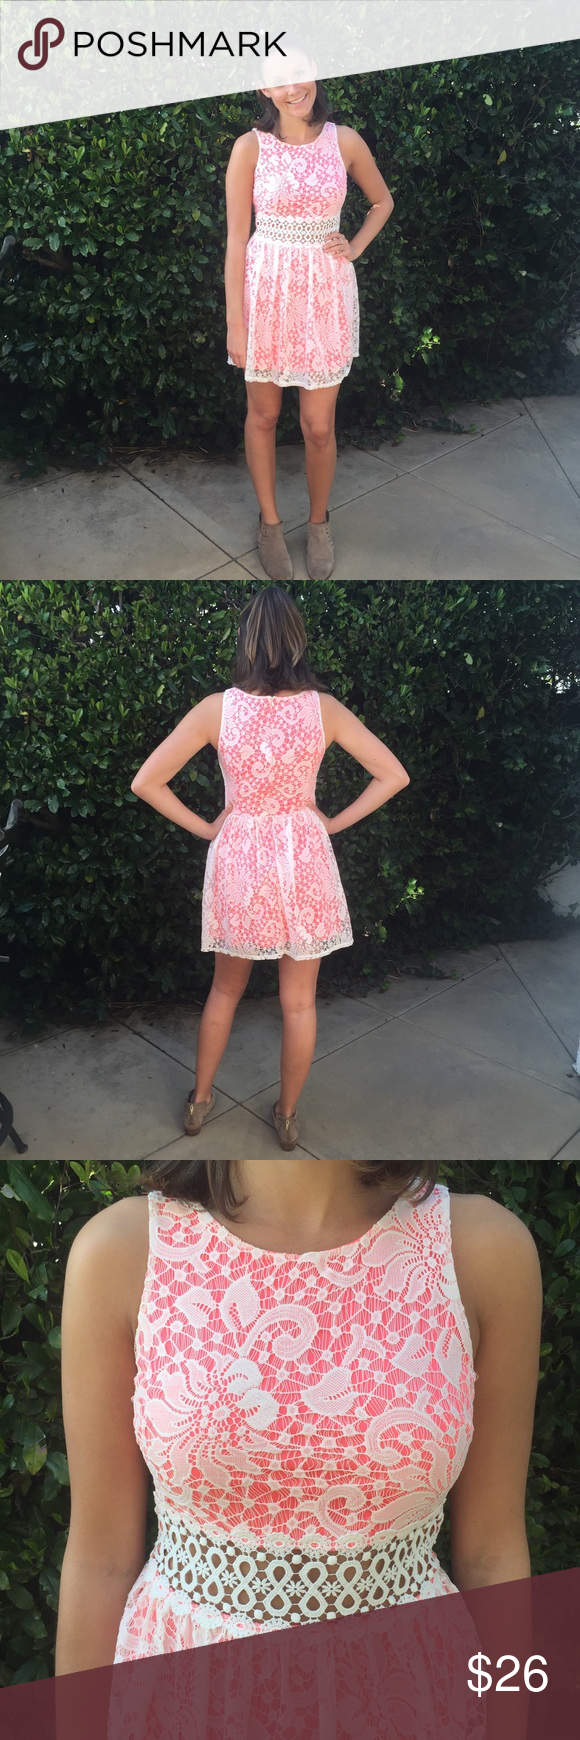 Nordstrom Lace Dress